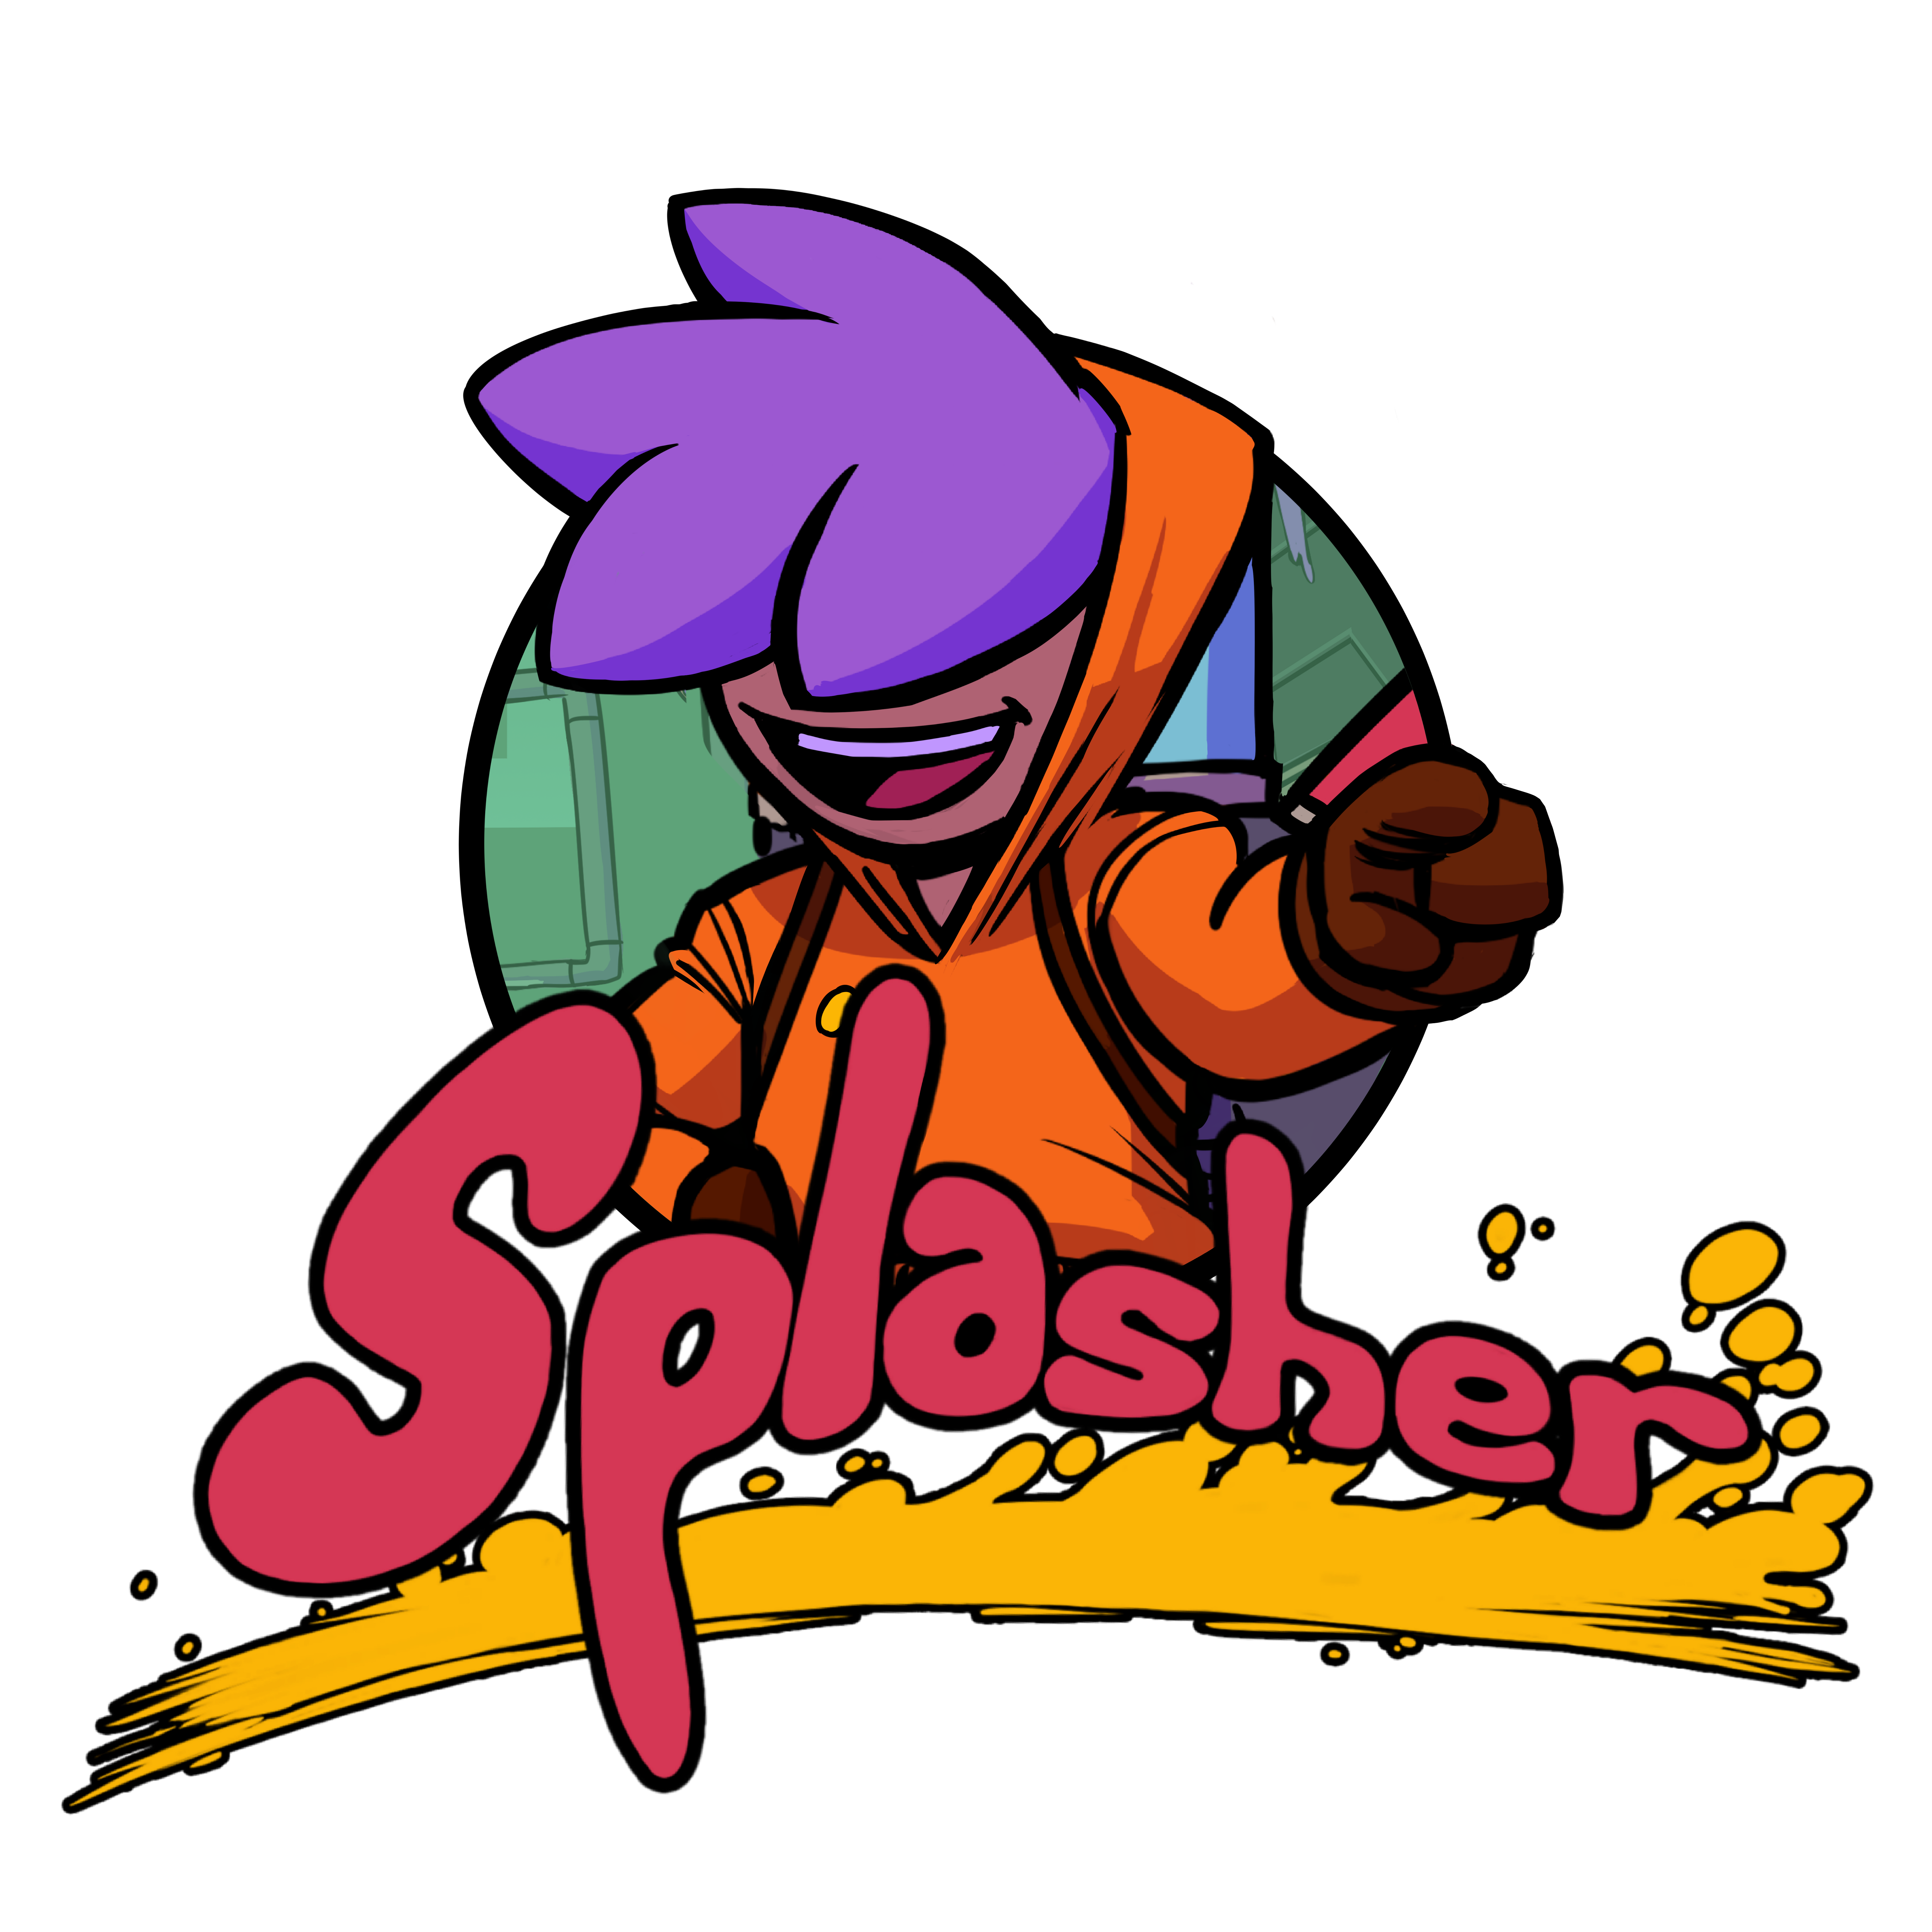 Splasher |